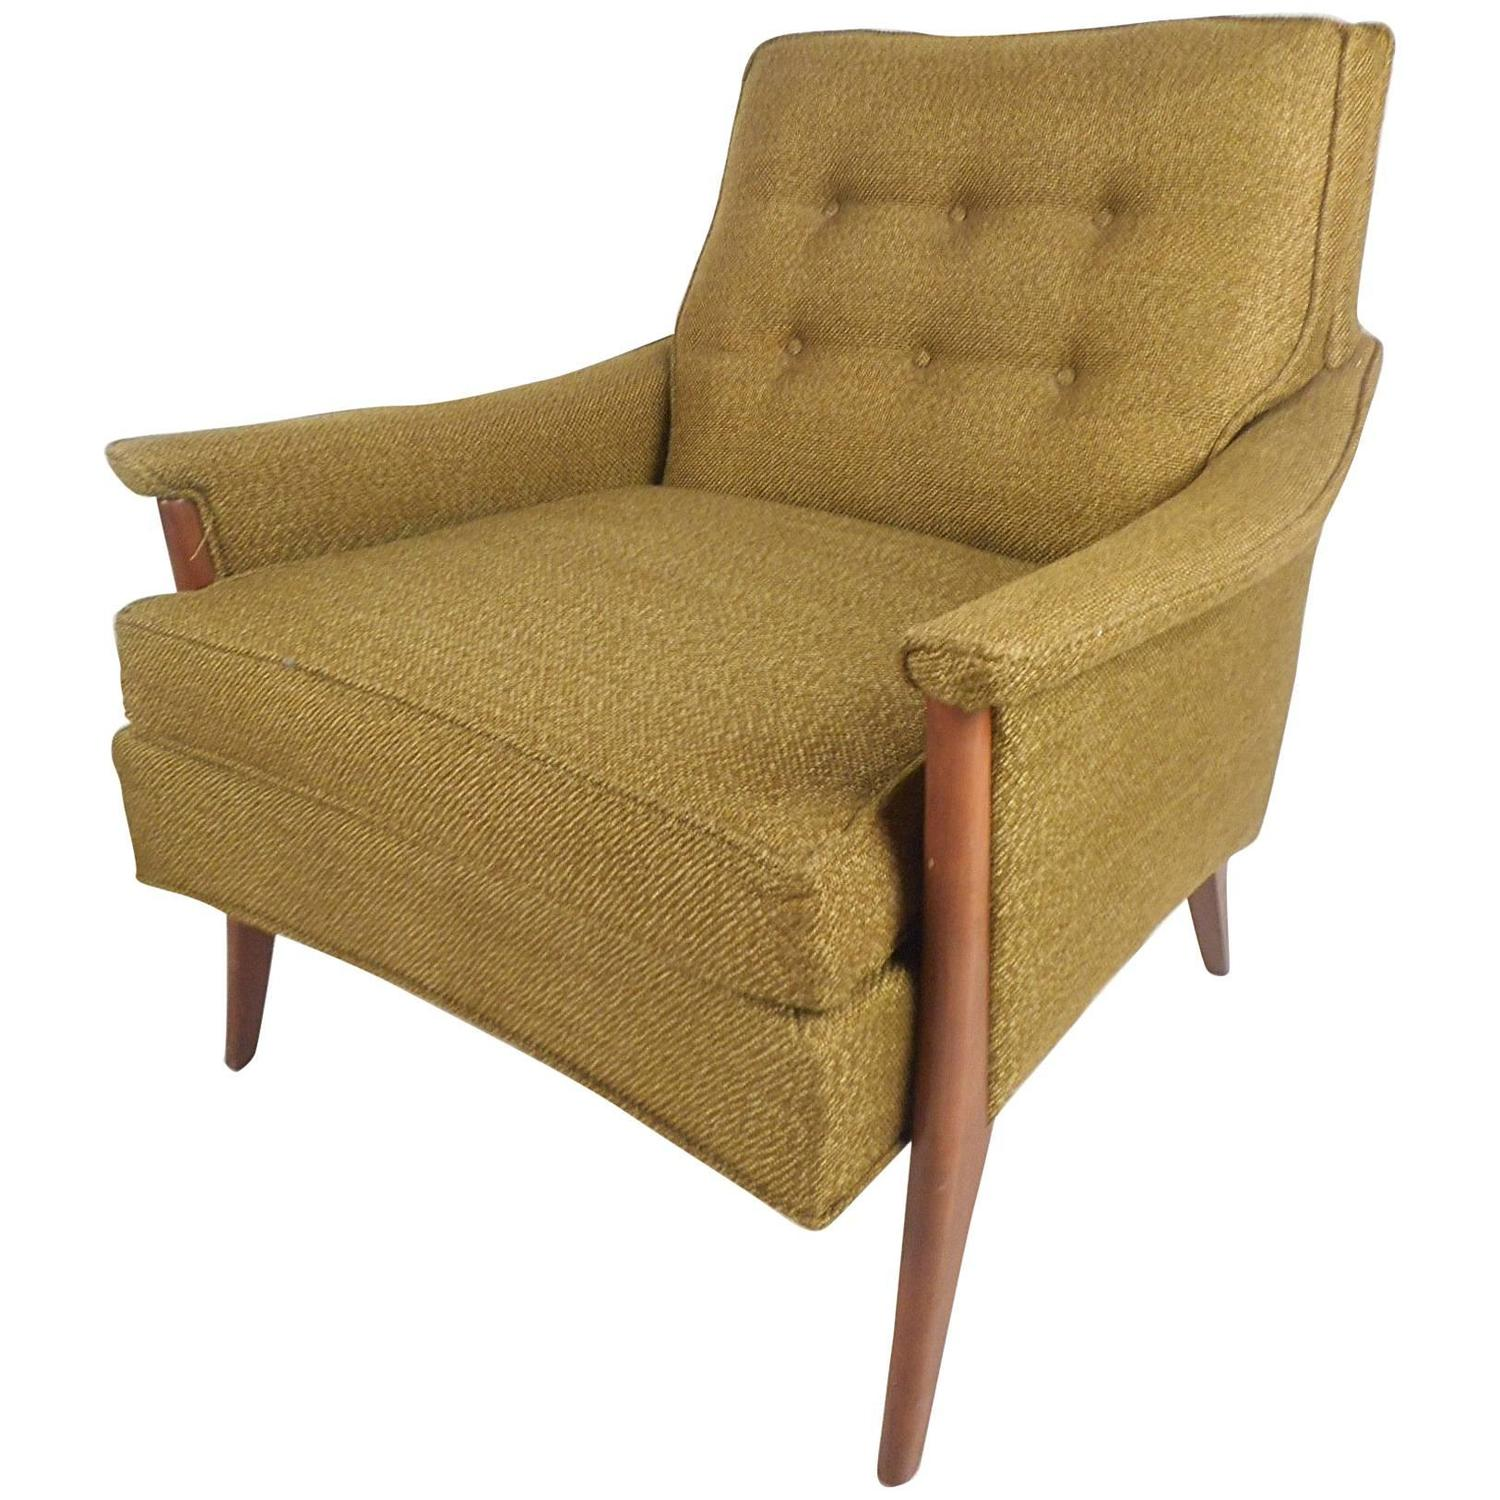 Mid Century Modern Tufted Lounge Chair by Kroehler Mfg Co For Sale